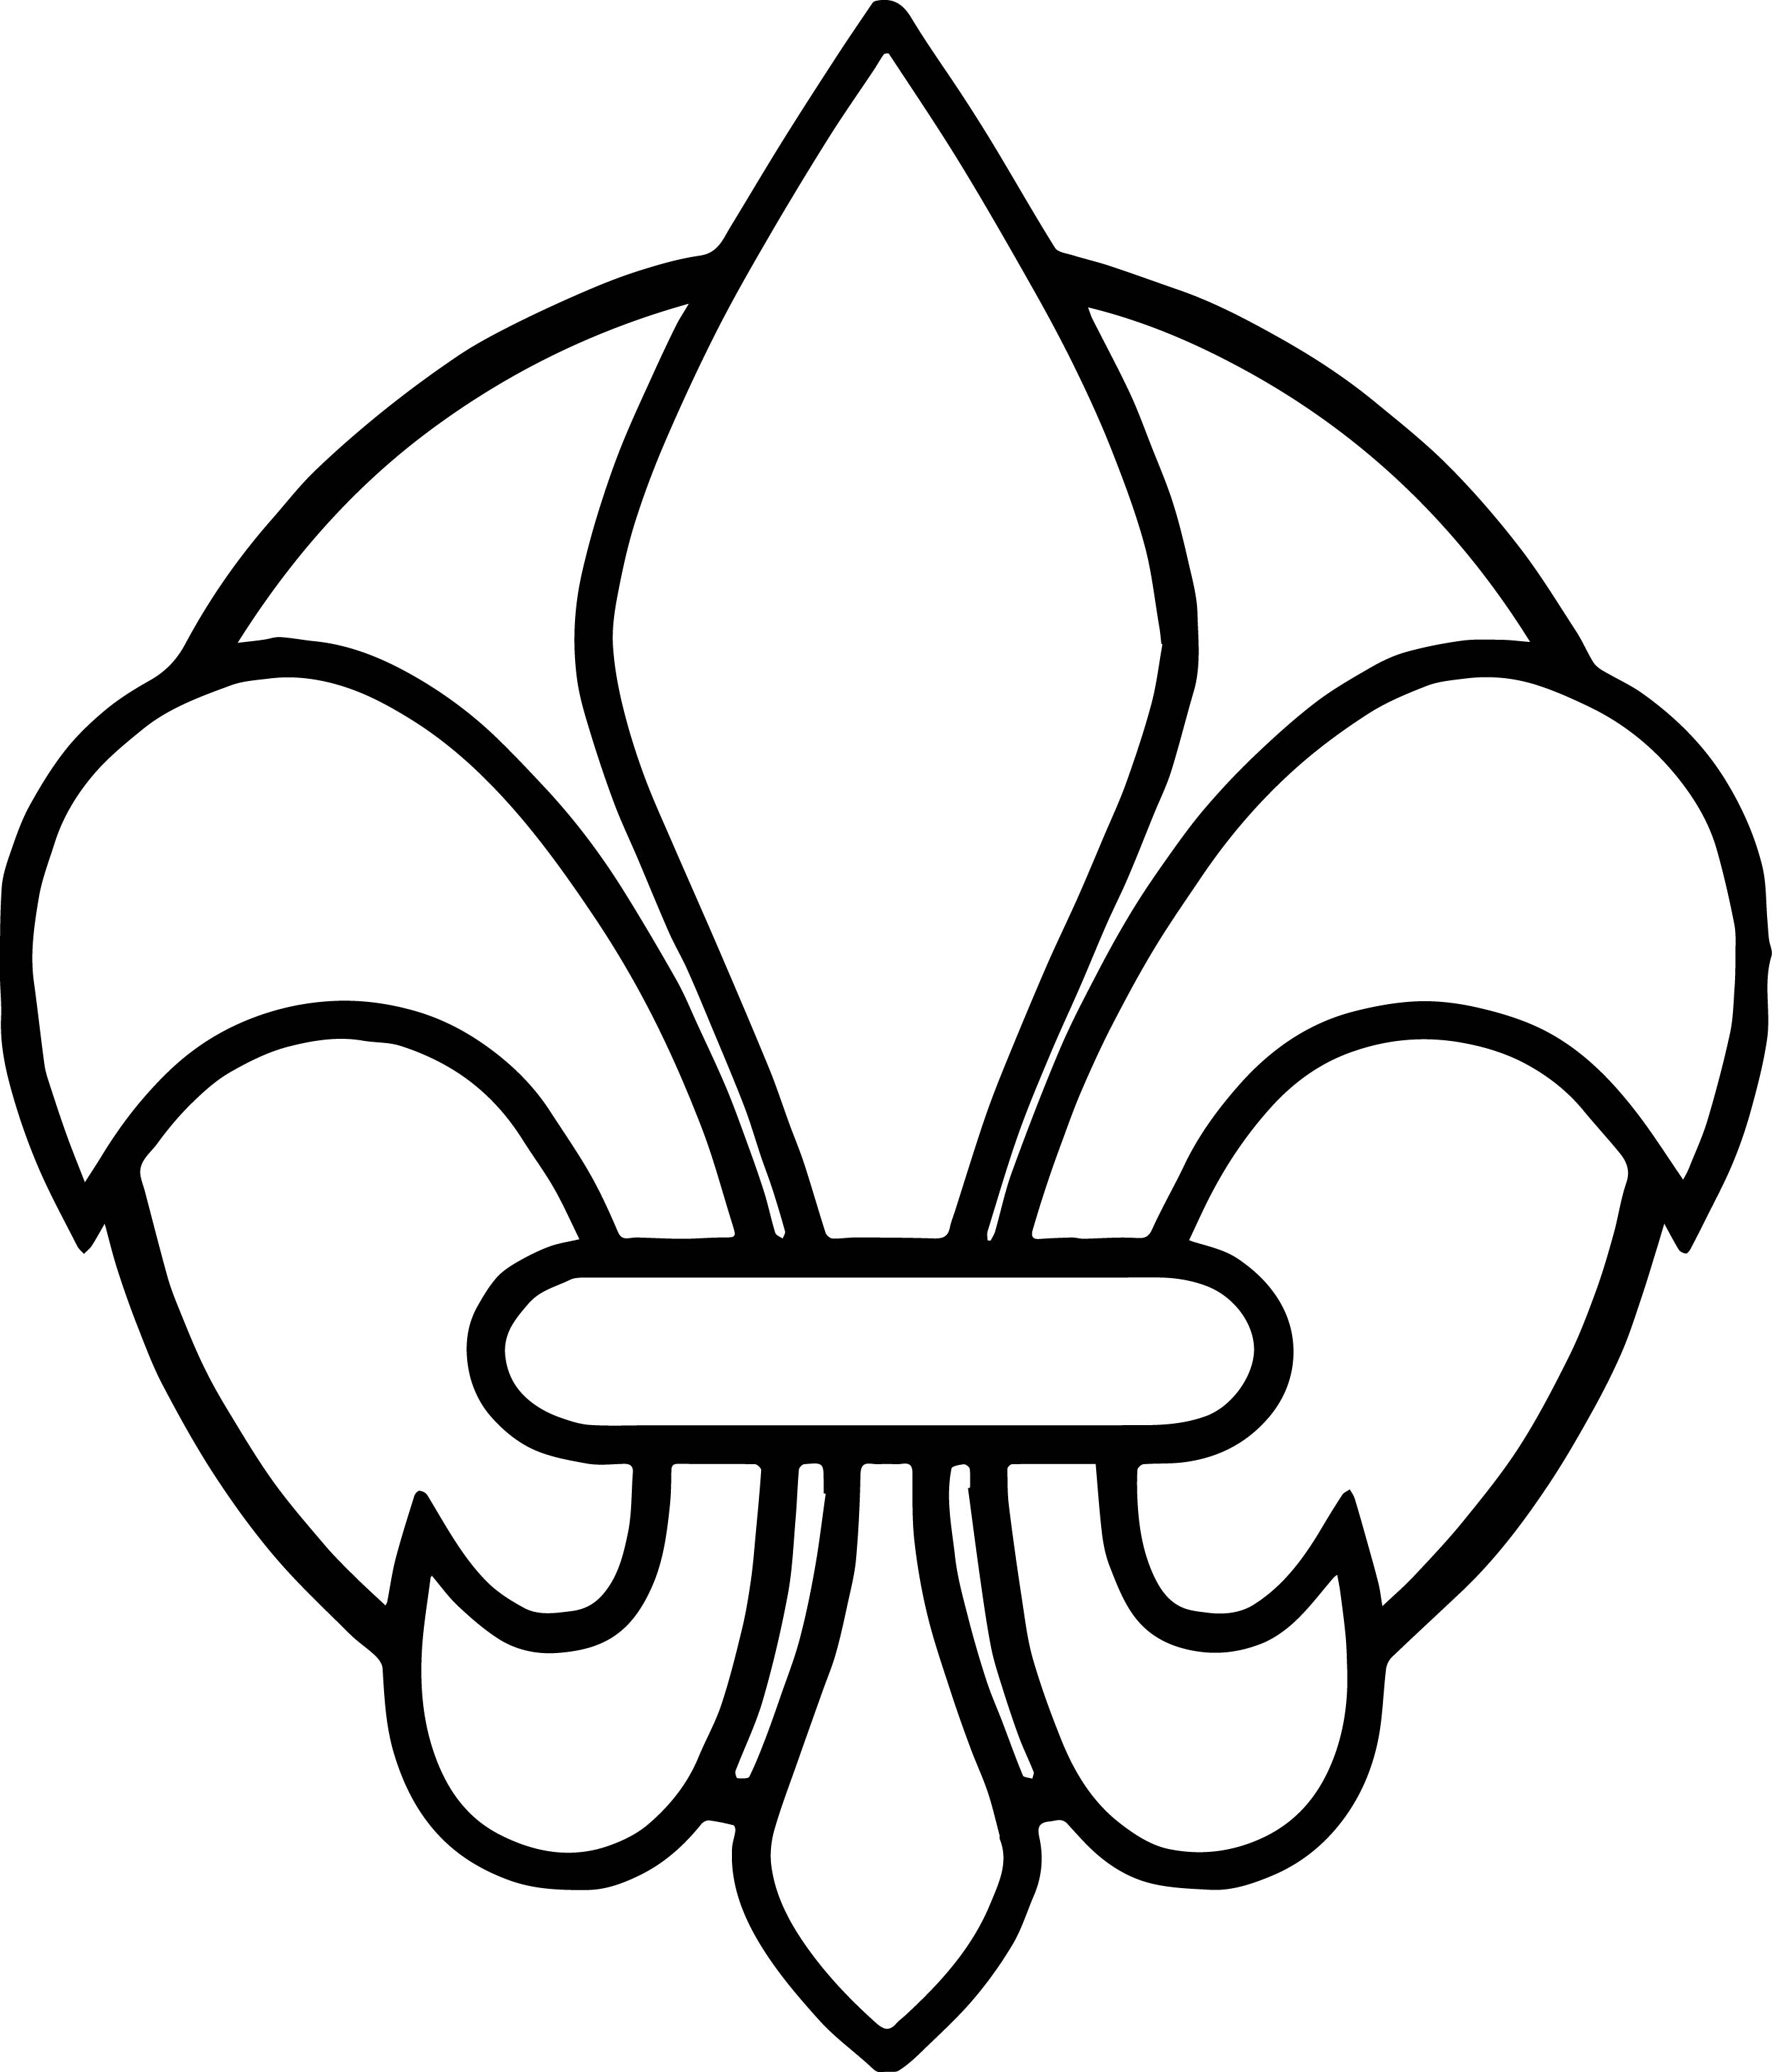 fleur de lis coloring pages - photo#25